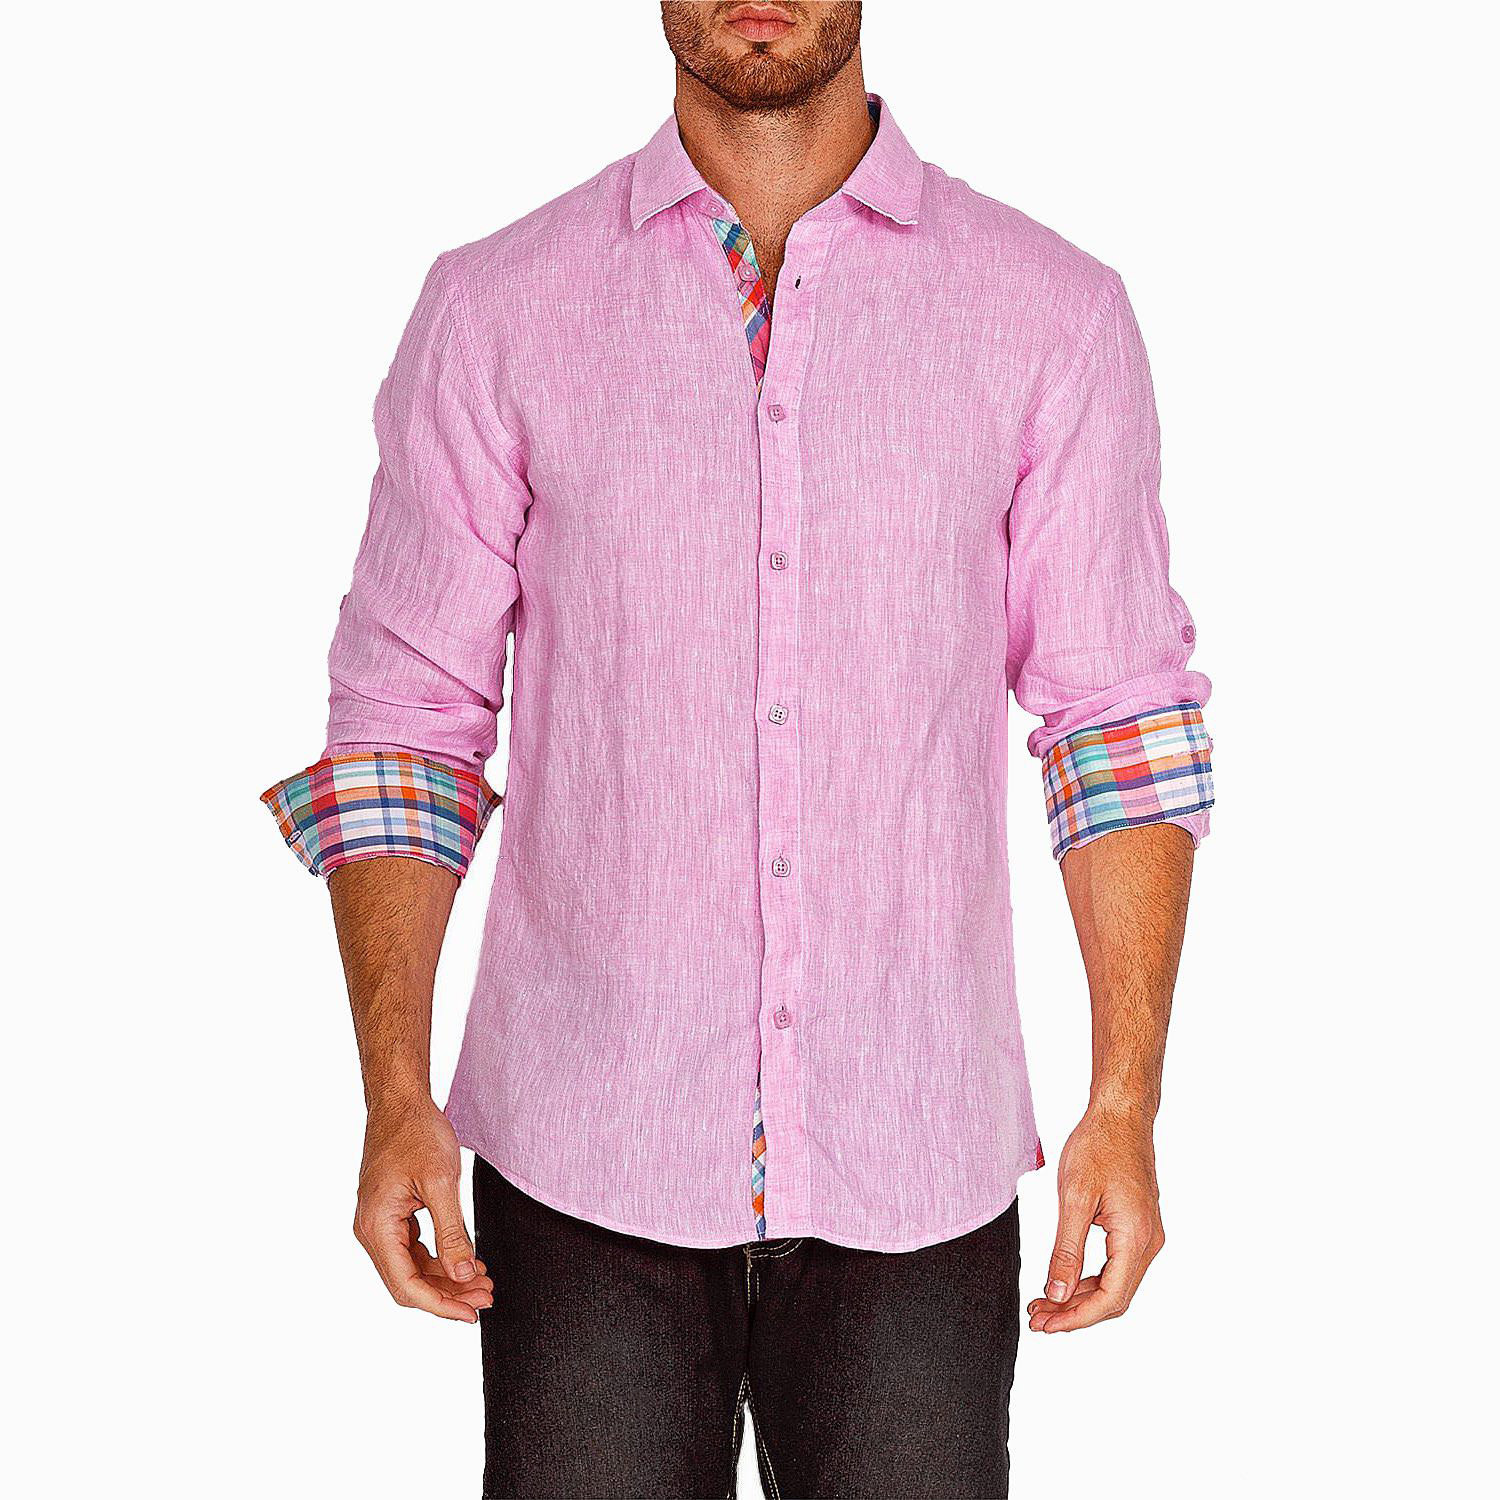 plaid trim long sleeve button up shirt pink s. Black Bedroom Furniture Sets. Home Design Ideas